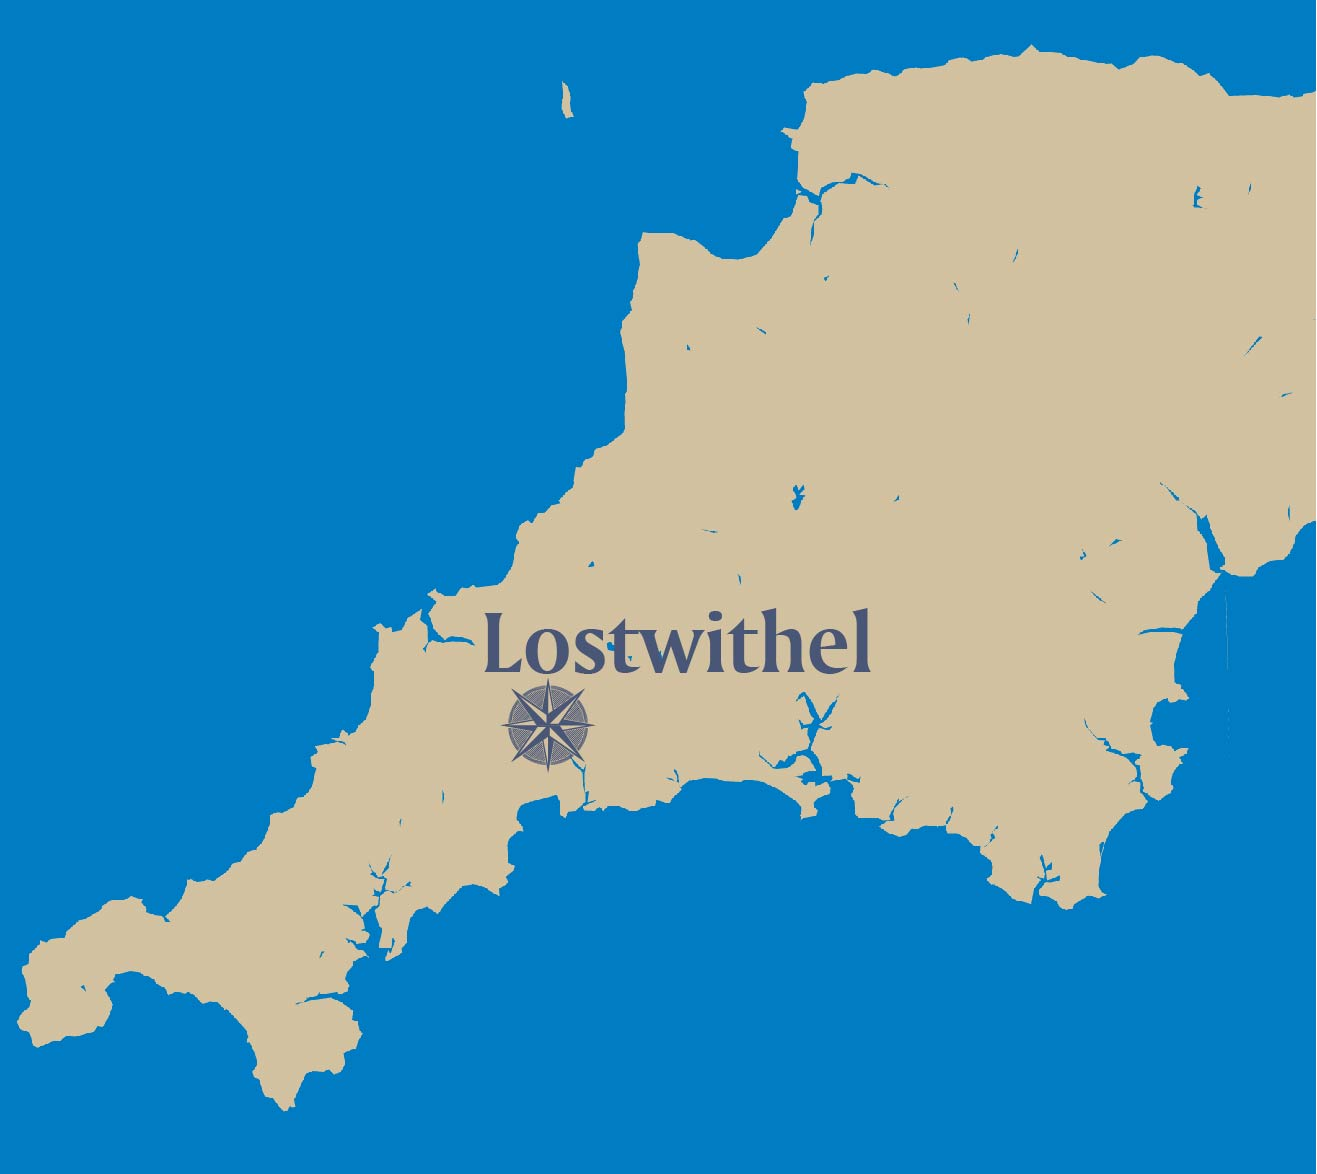 Lostwithel-map